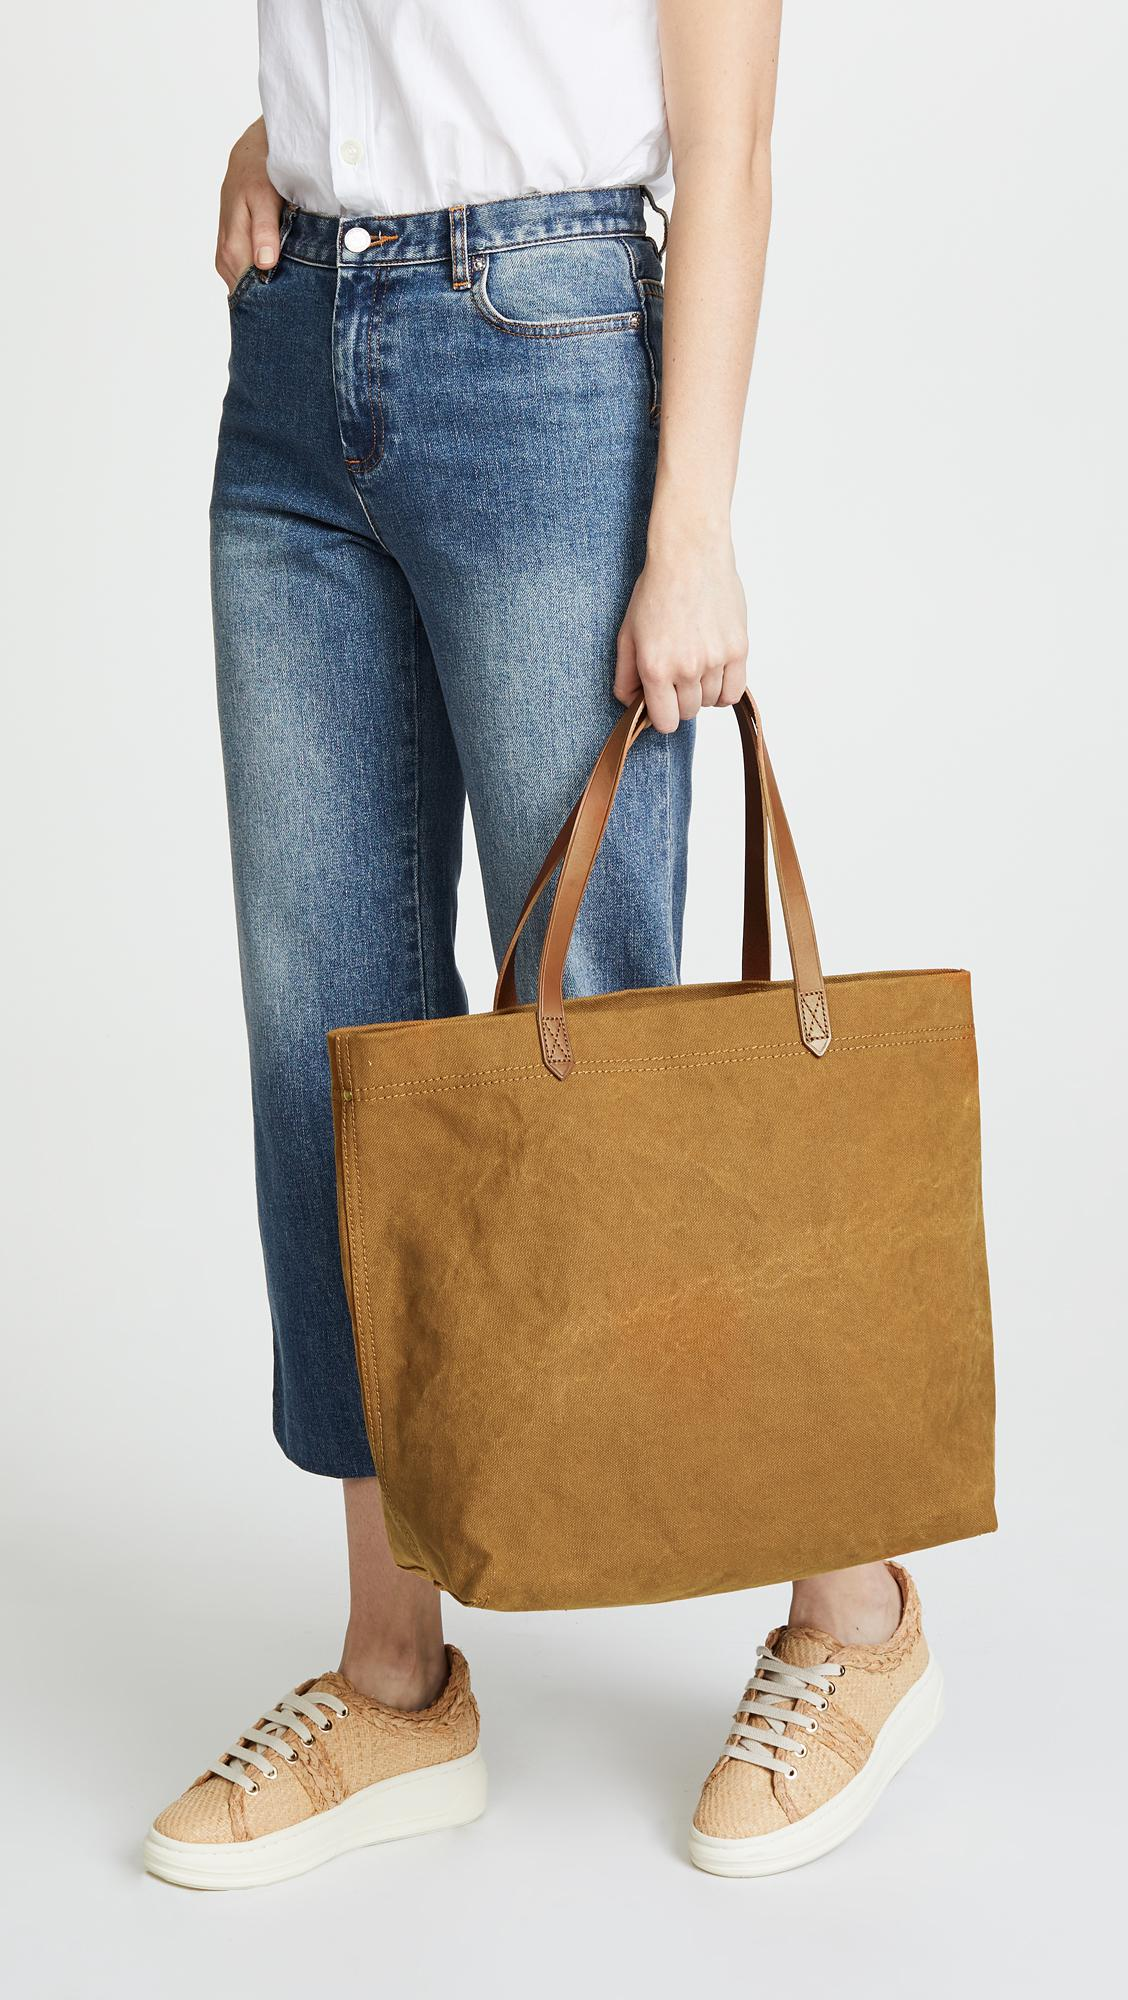 Heavy Canvas Transport Tote Bag